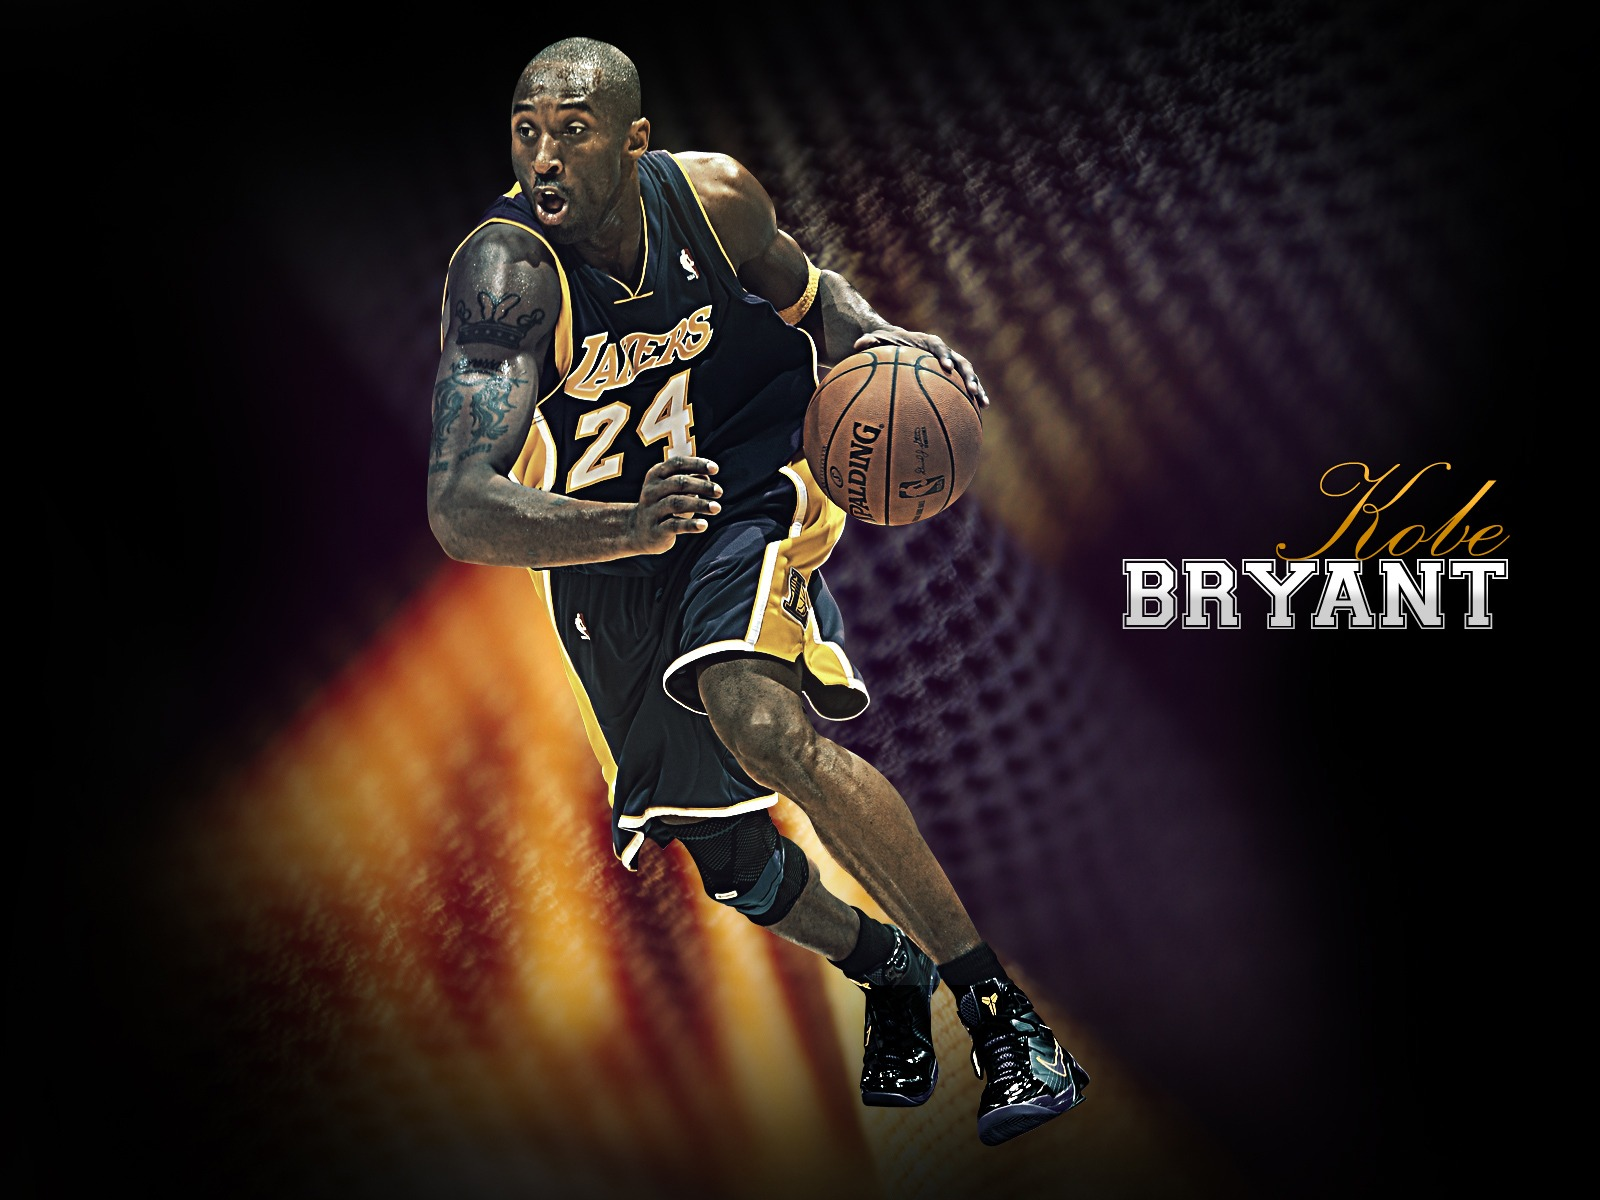 Kobe Bryant Wallpaper Nba Sports Wallpapers In Jpg Format For Free